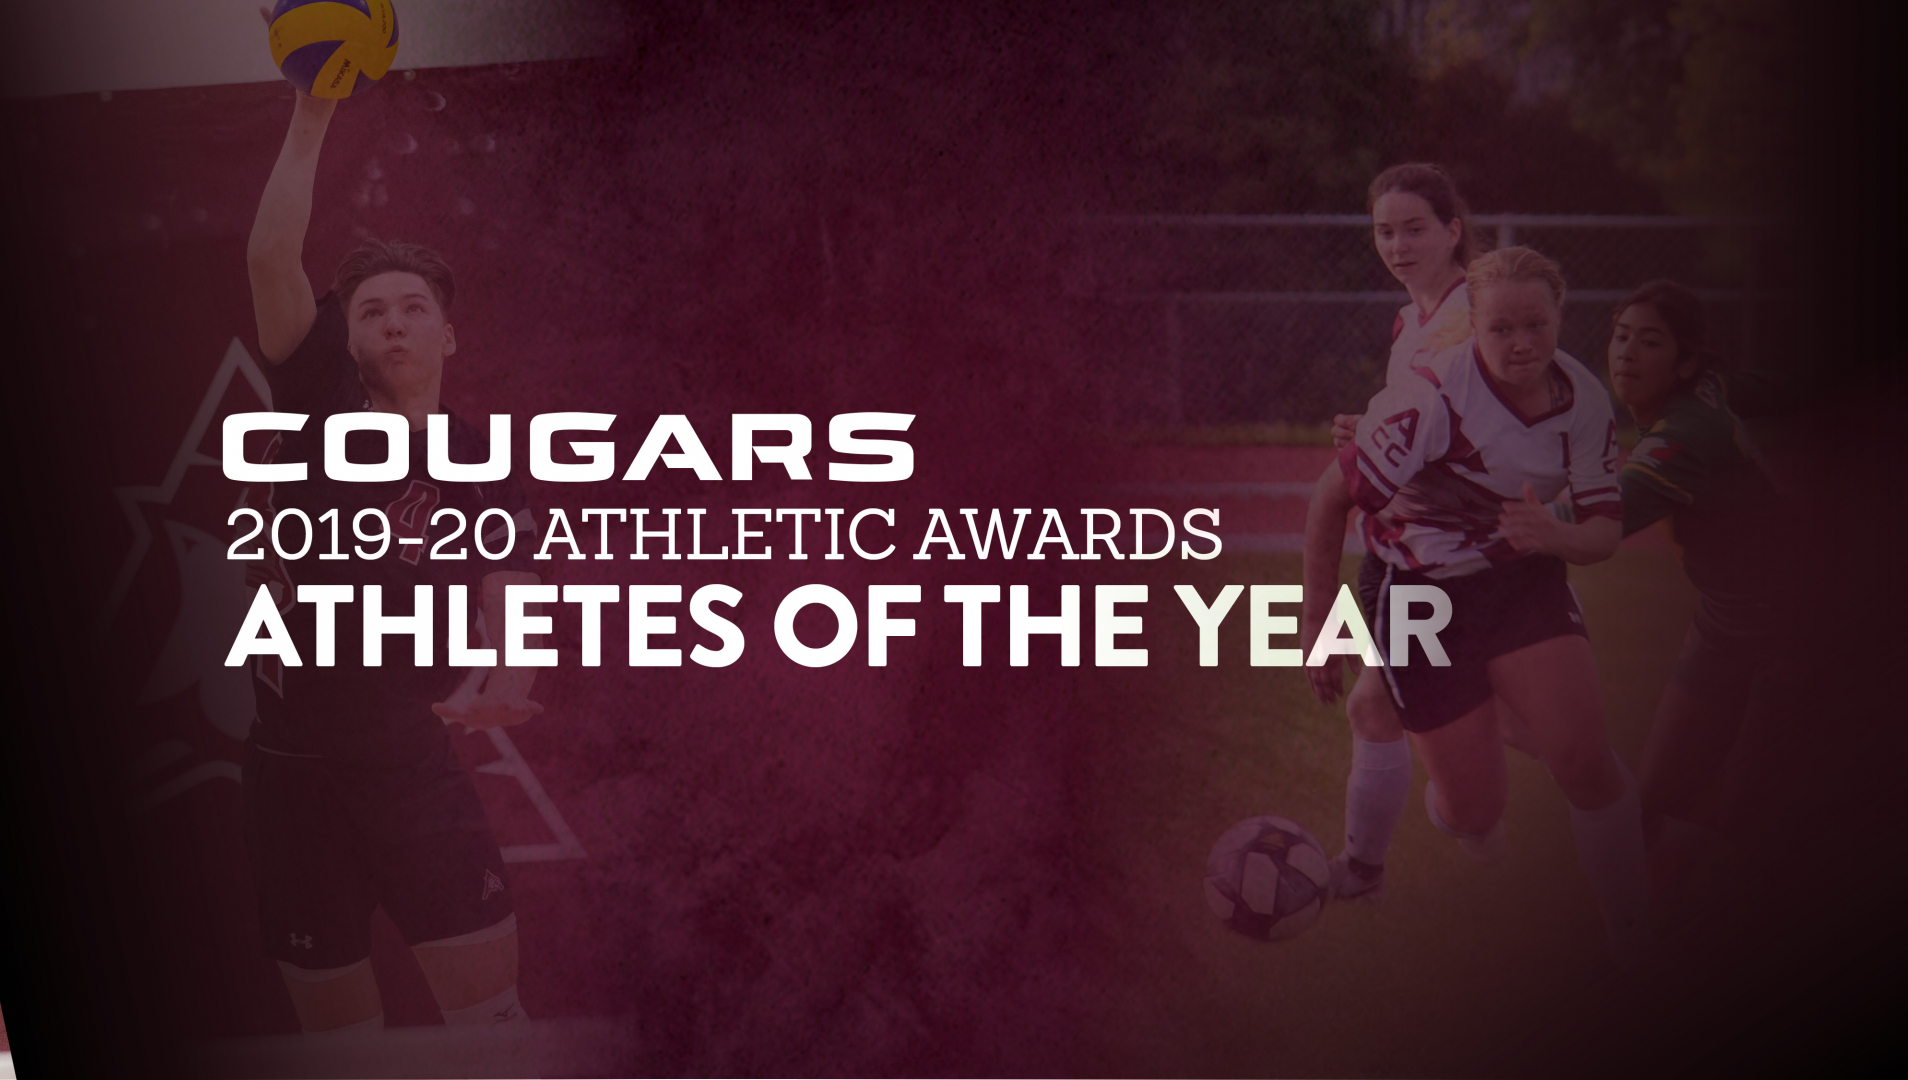 Cougars' Athletes of the Year